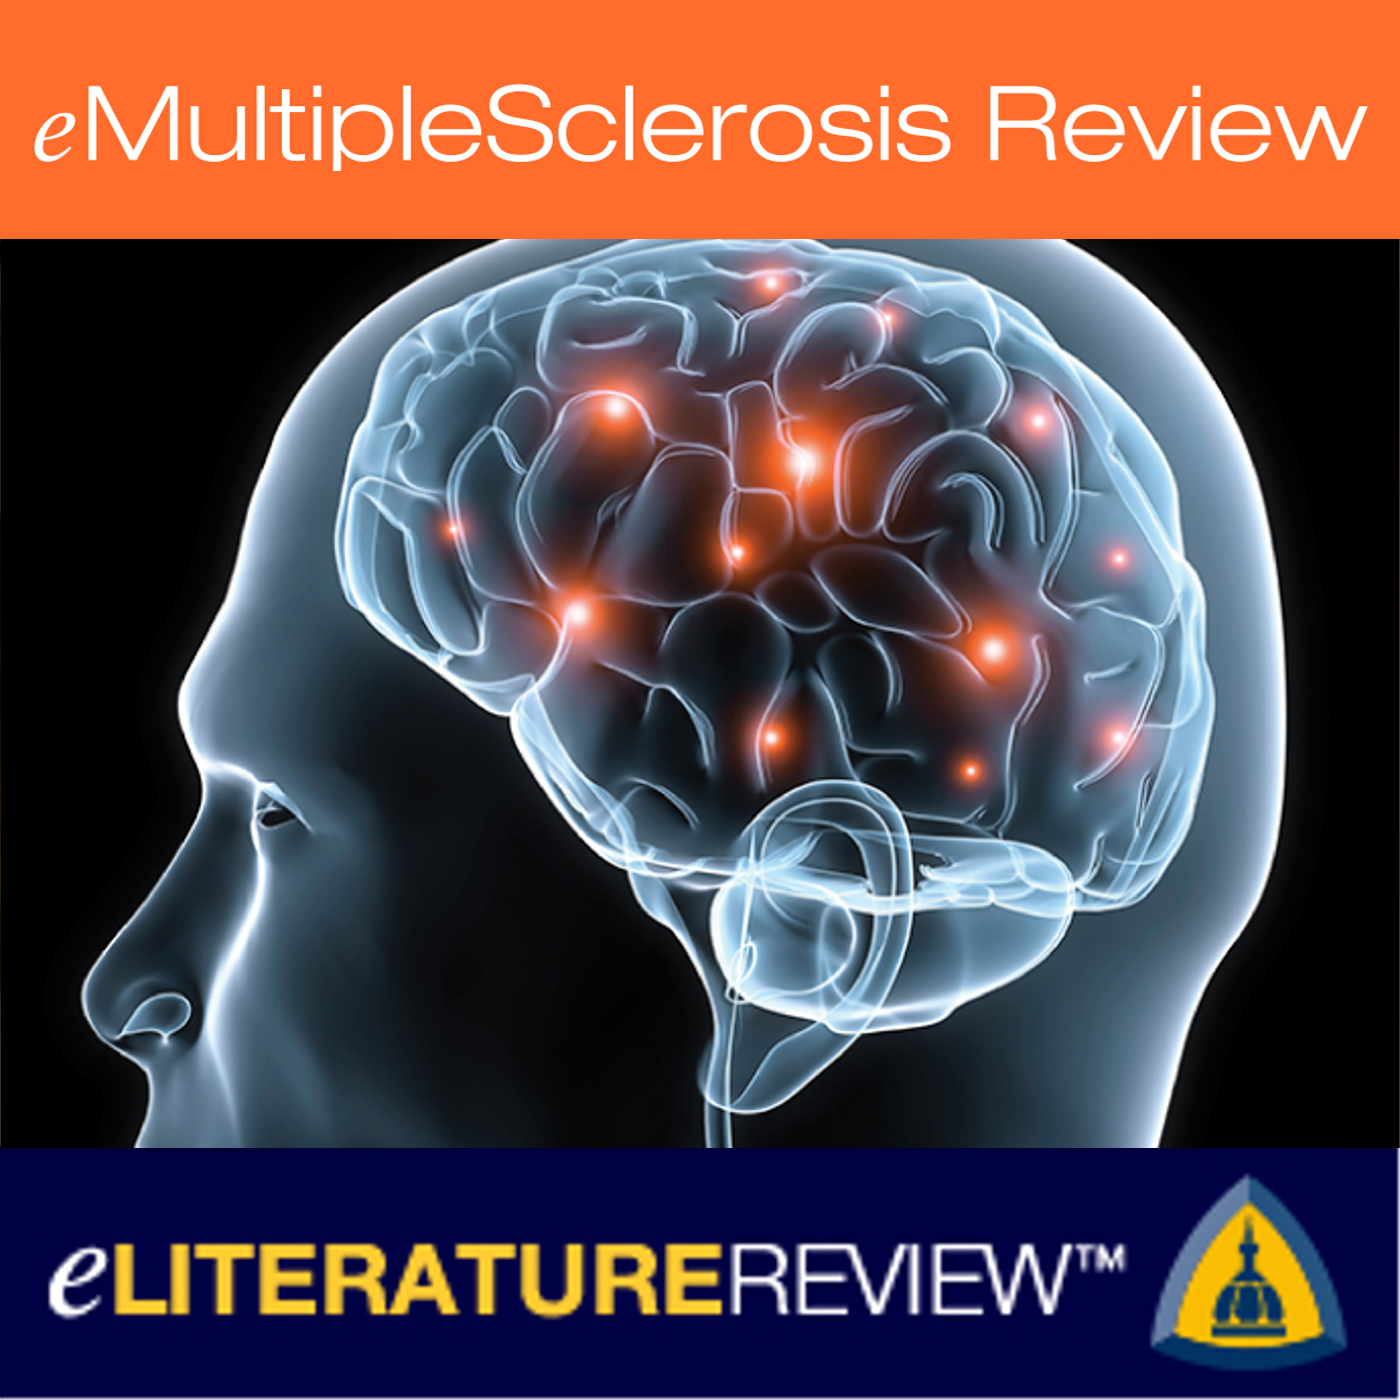 eMultipleSclerosis Review